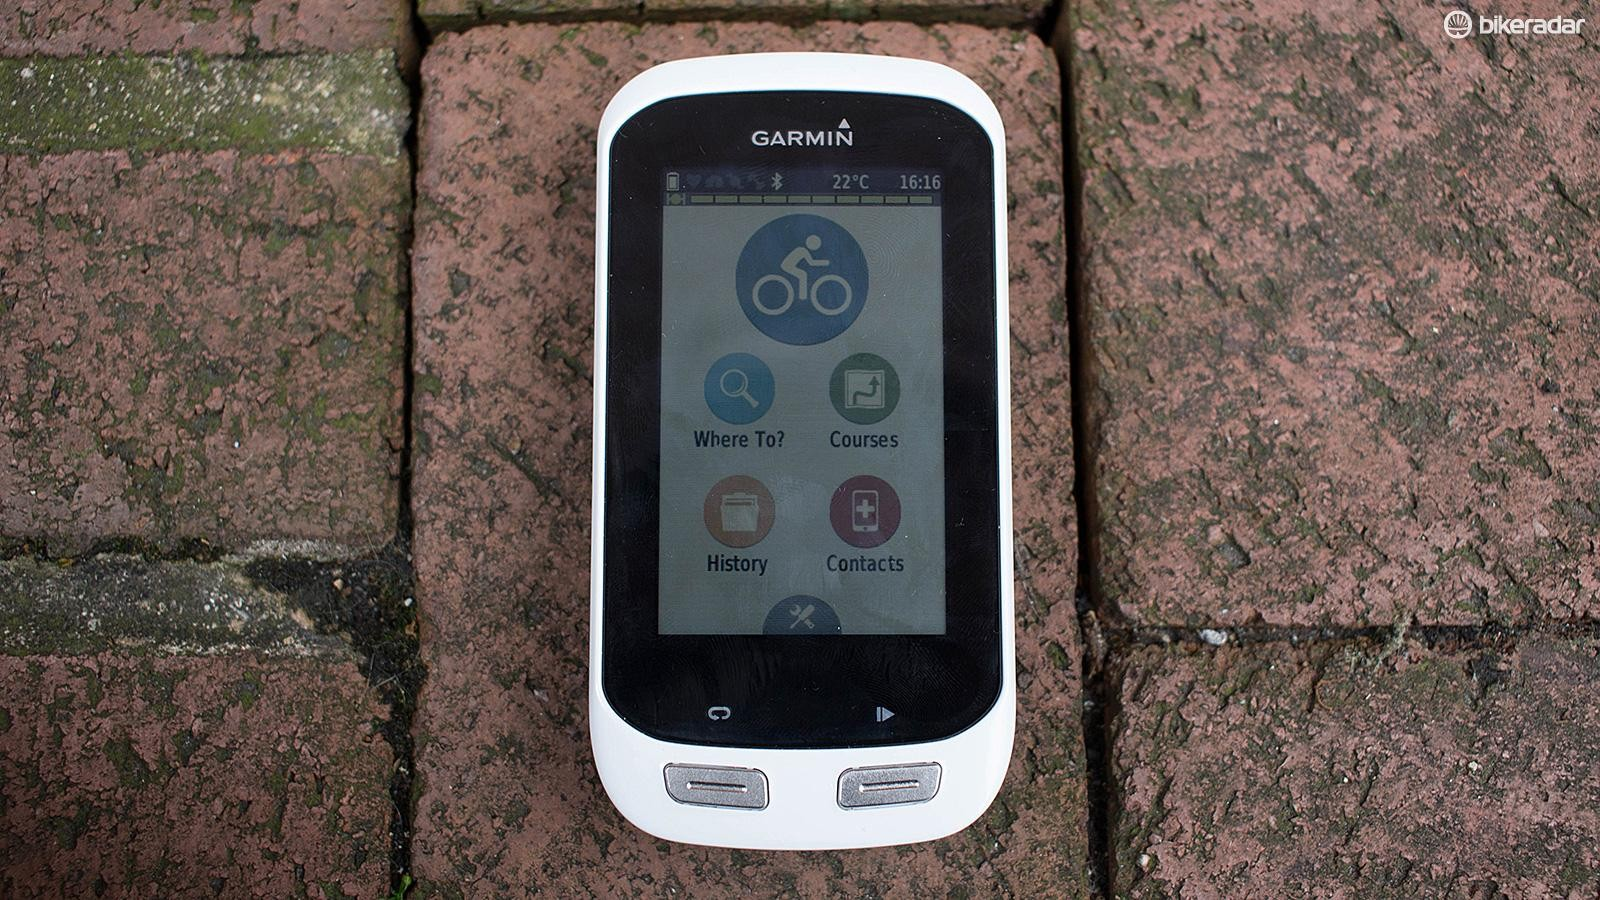 The Garmin Edge Explore 1000 is brilliant for finding your way around